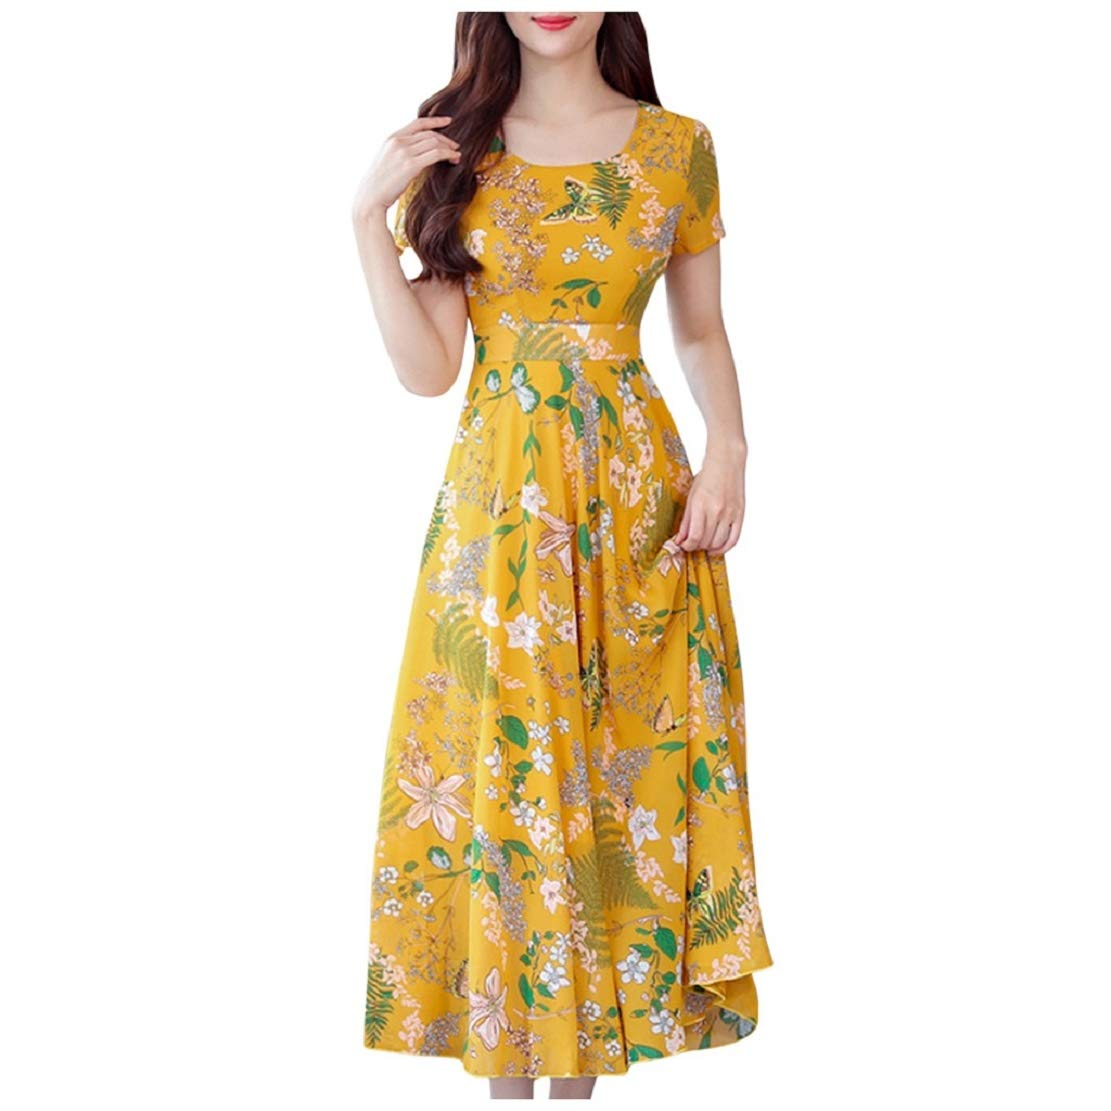 Available at Amazon: Women's Fashion Elegant Beach Printing Boho Style Short Sleeve Maxi Beach Dress Sopzxclim